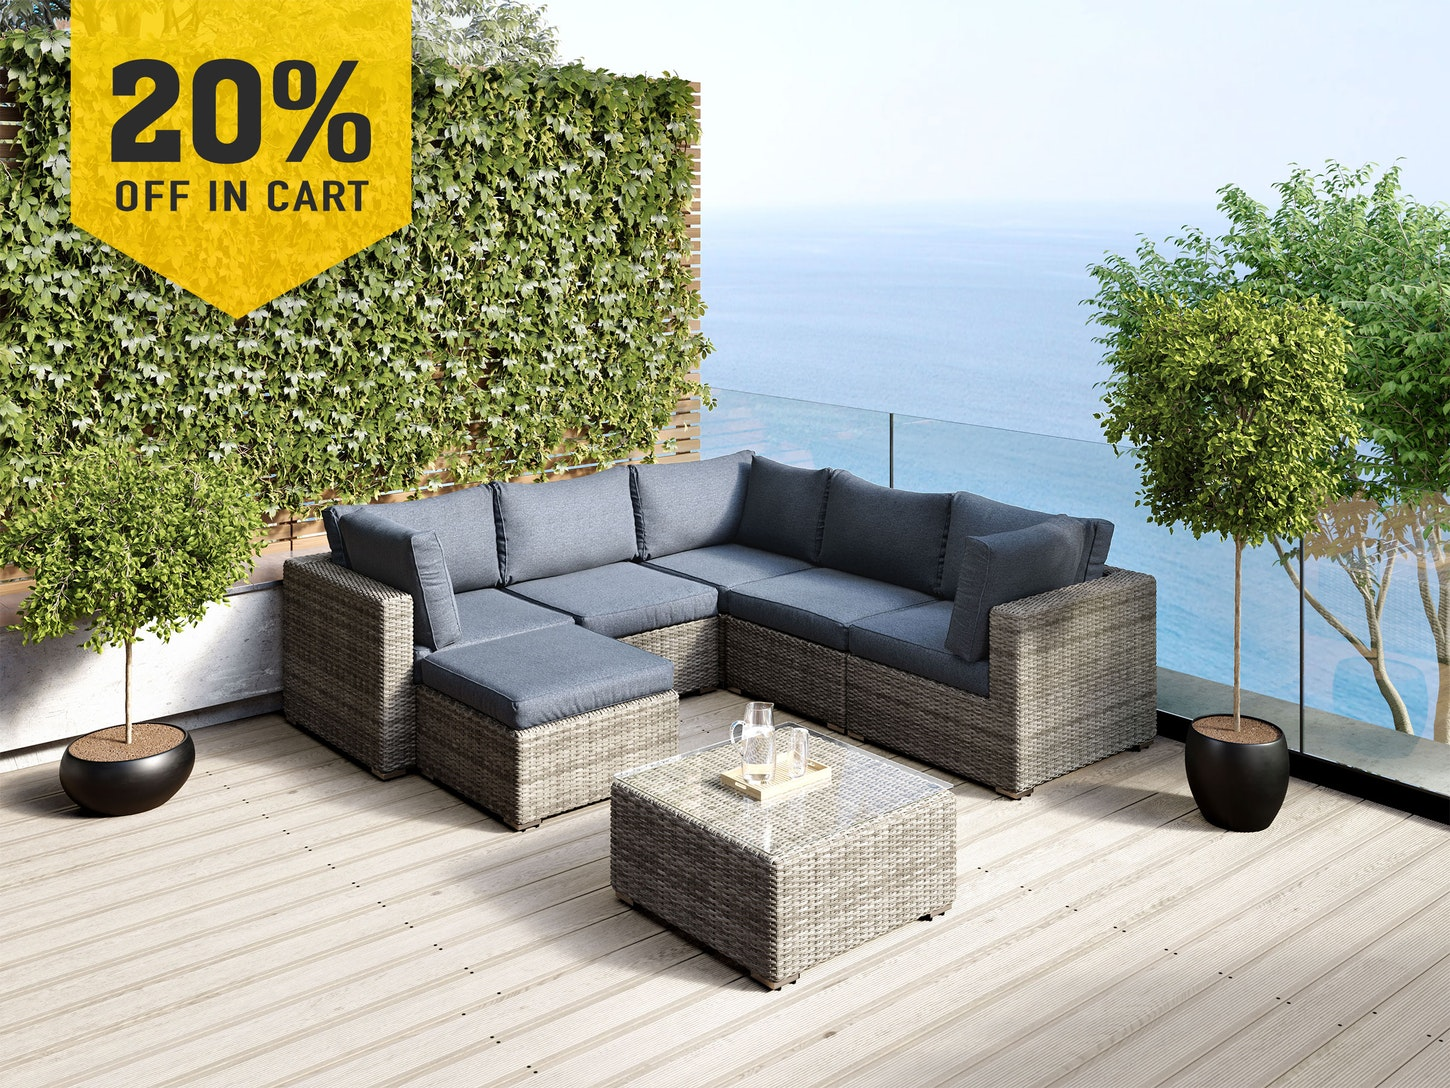 Kapiti rattan suite 4 lounge sets outdoor furniture home outdoor living trade tested